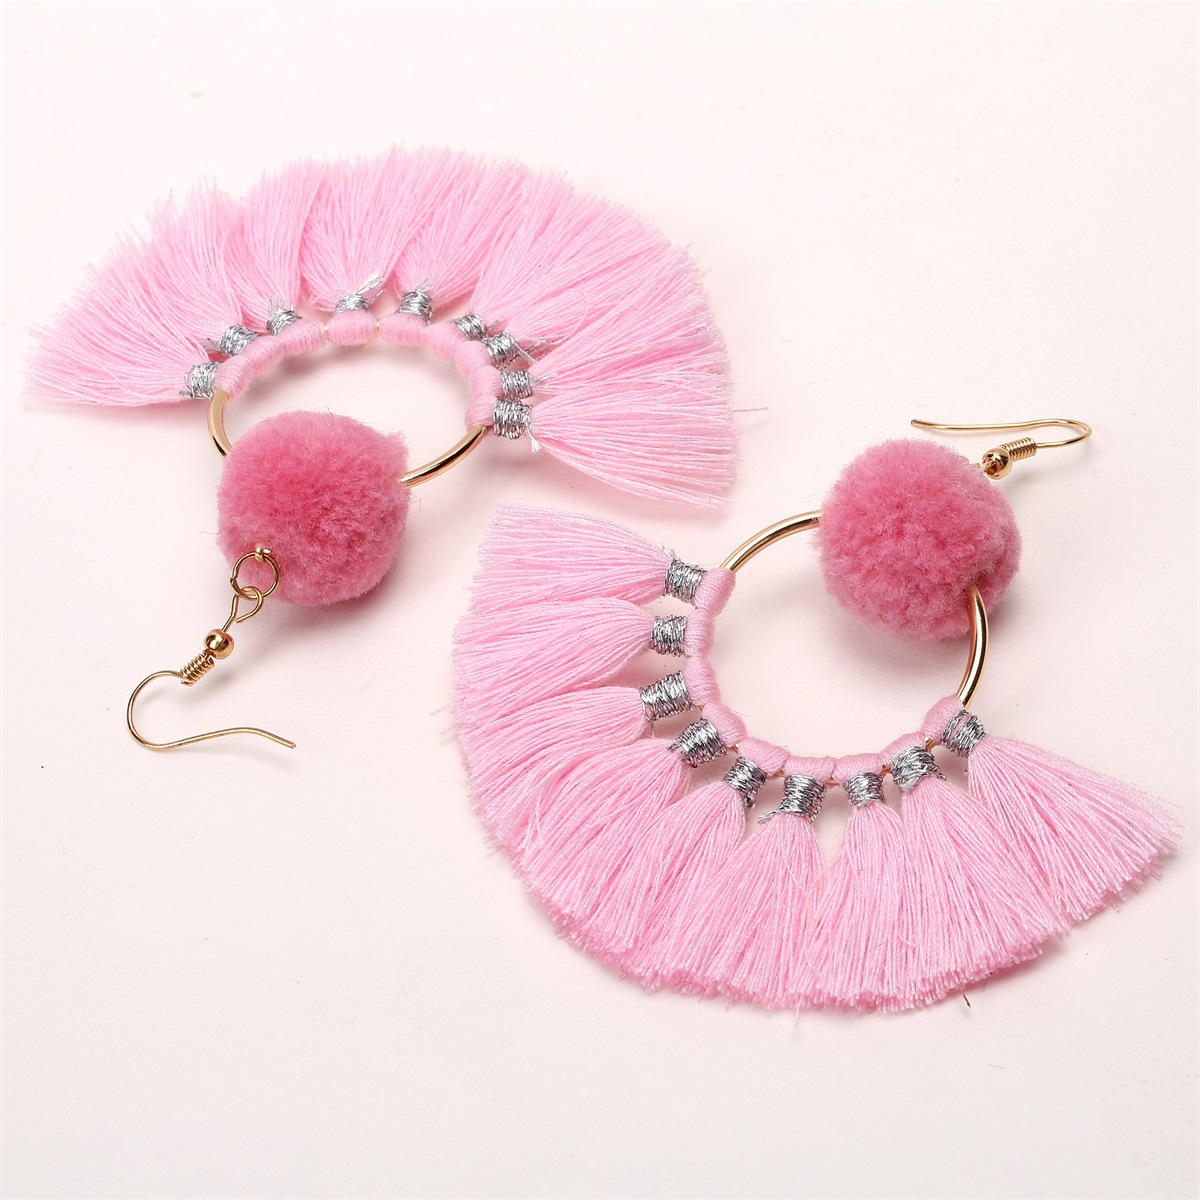 Retro Clothearring (Pink)NHXR1510-Pink